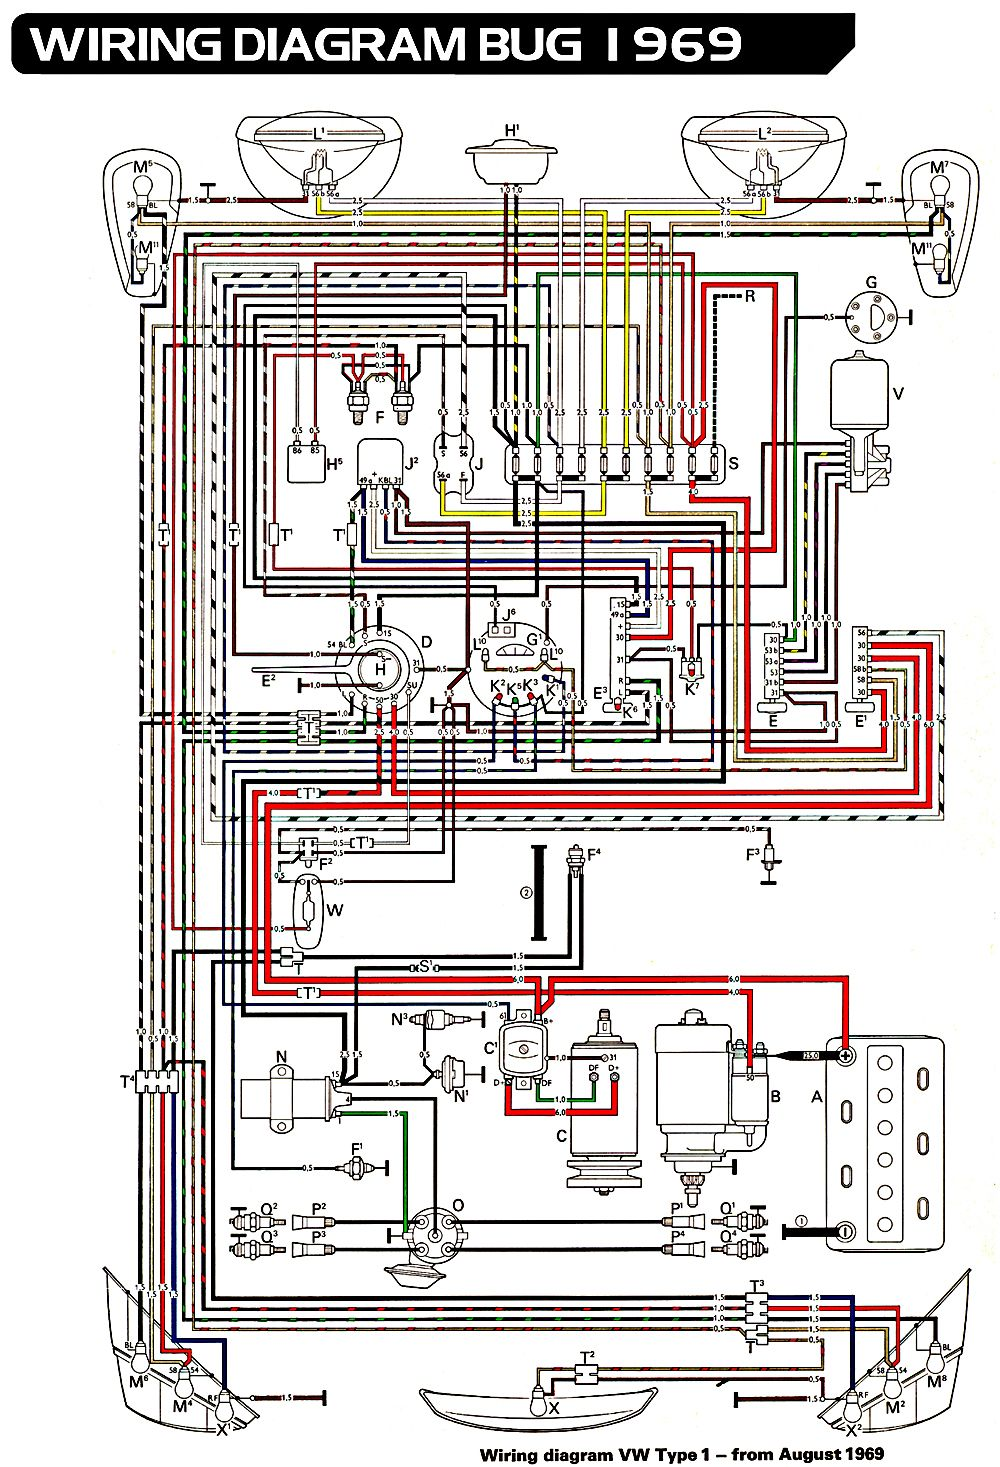 Vw Beetle Wiring Diagram 2000 Photoelectric Sensor 66 Engine Great Installation Of 1967 1500 Third Level Rh 10 20 Jacobwinterstein Com 1999